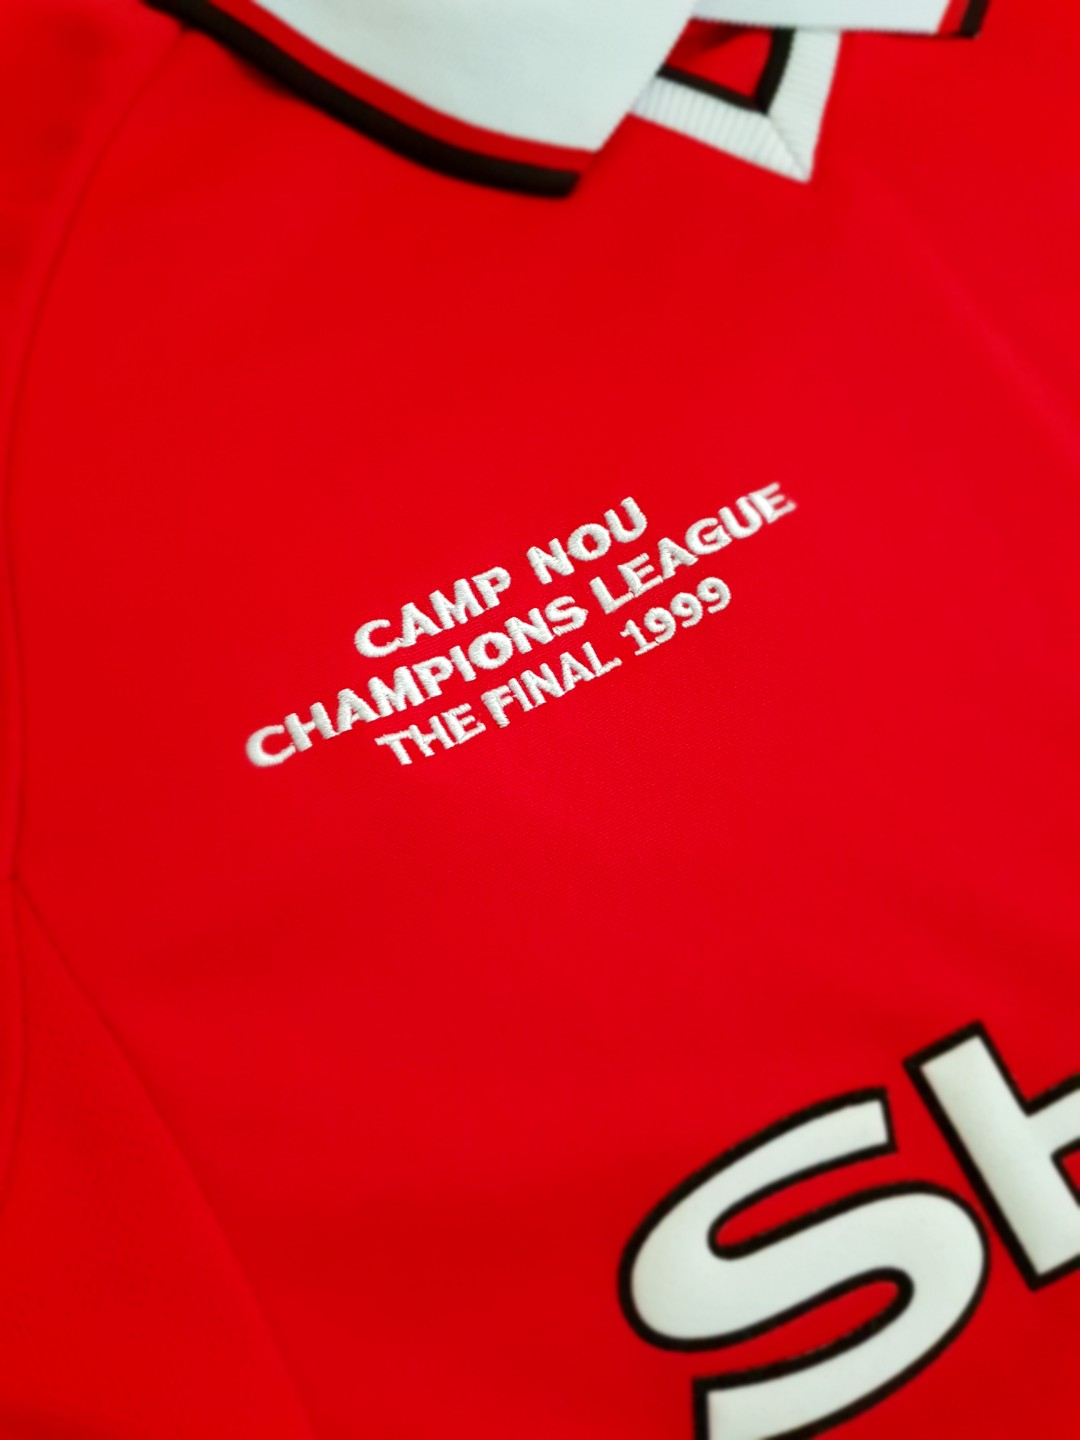 27fbdd29d8f Manchester United Retro Champions League Final Shirt 1999 – EDGE ...